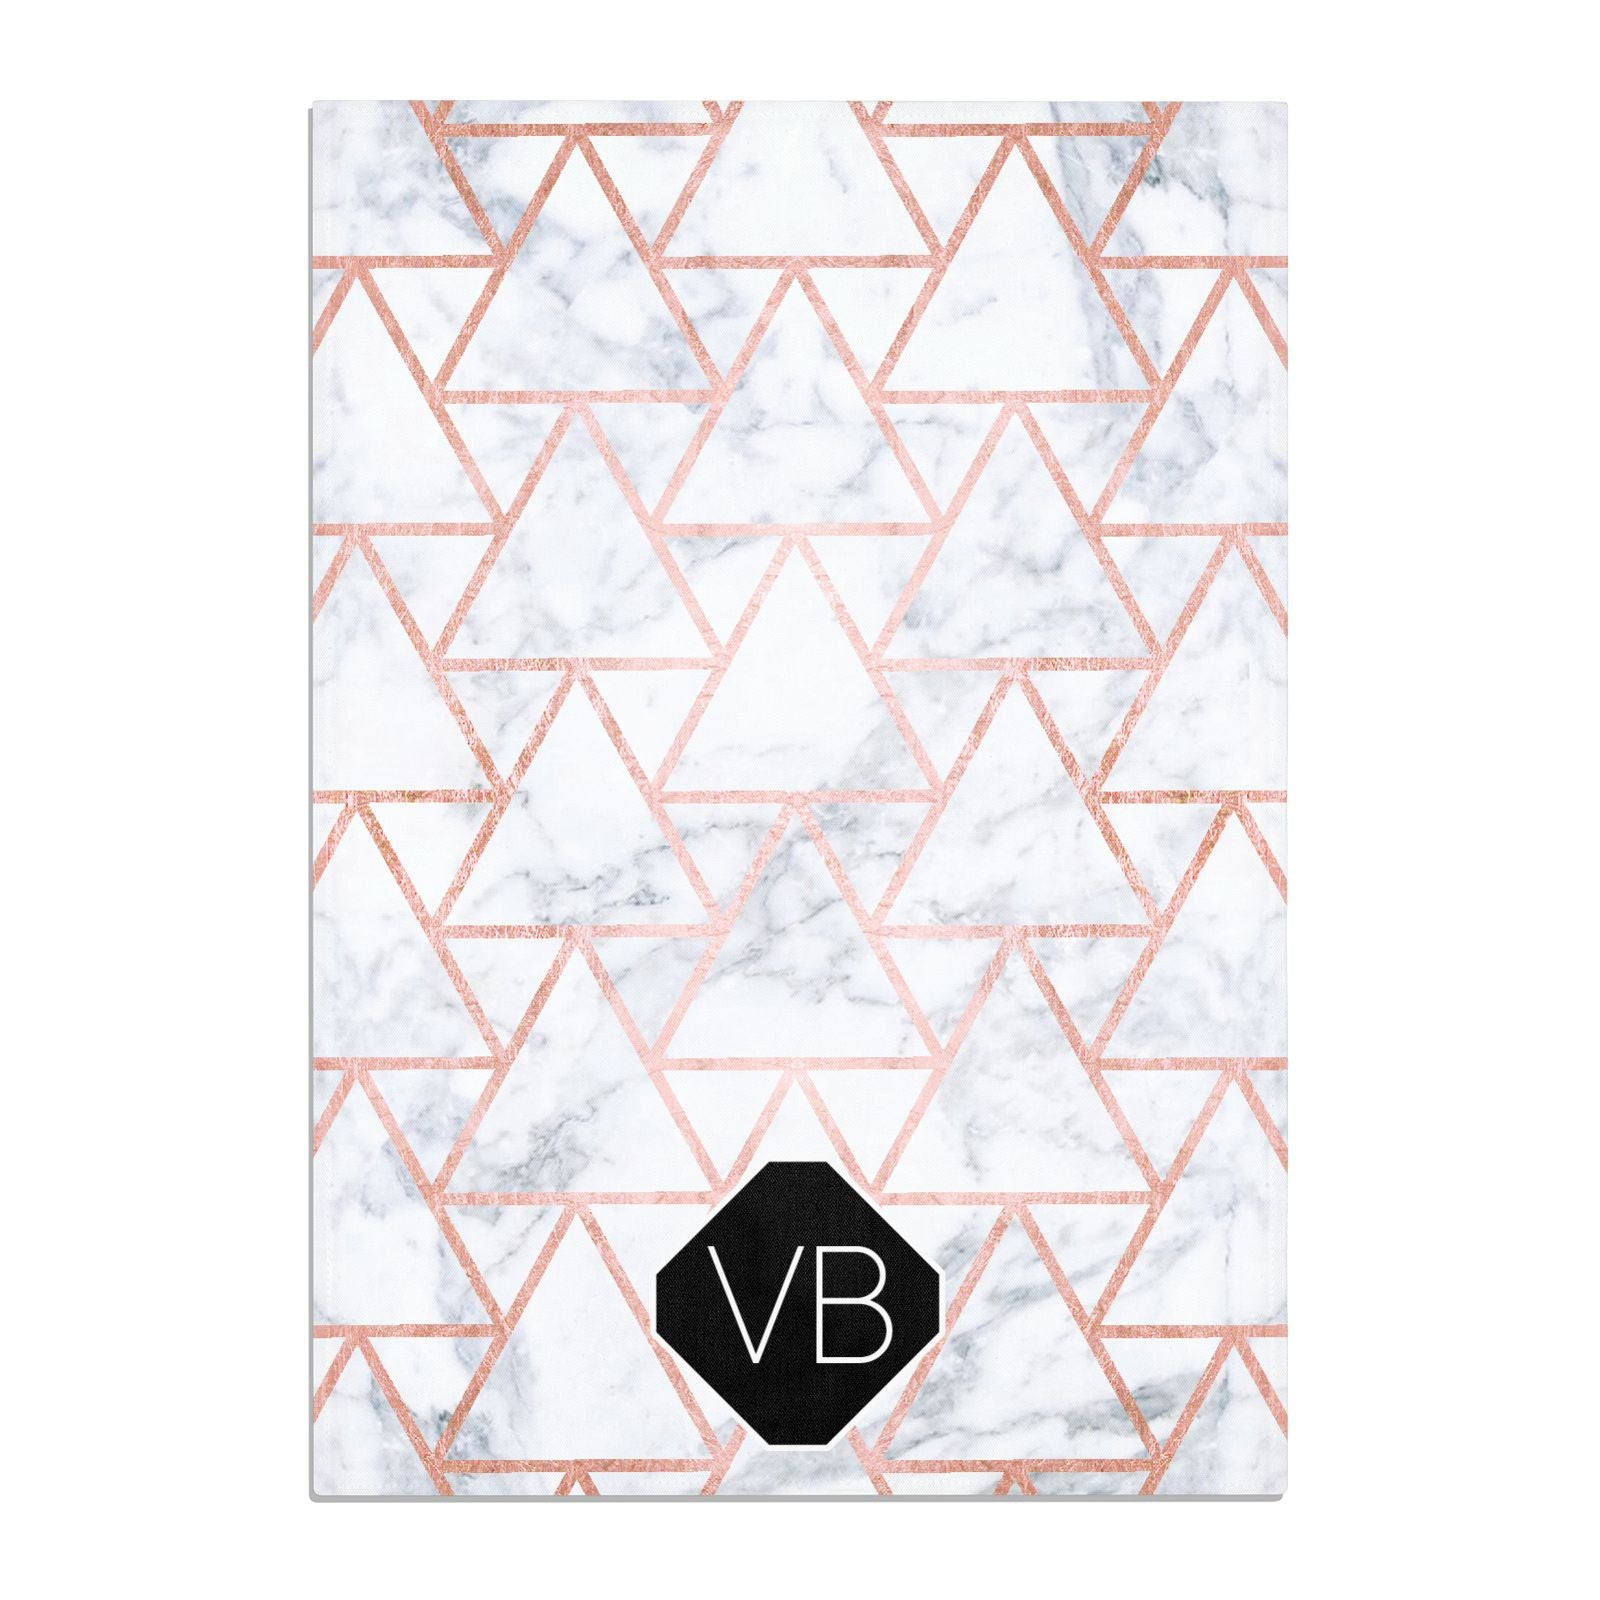 Personalised Rose Gold Grey Marble Hexagon Cotton Tea Towel